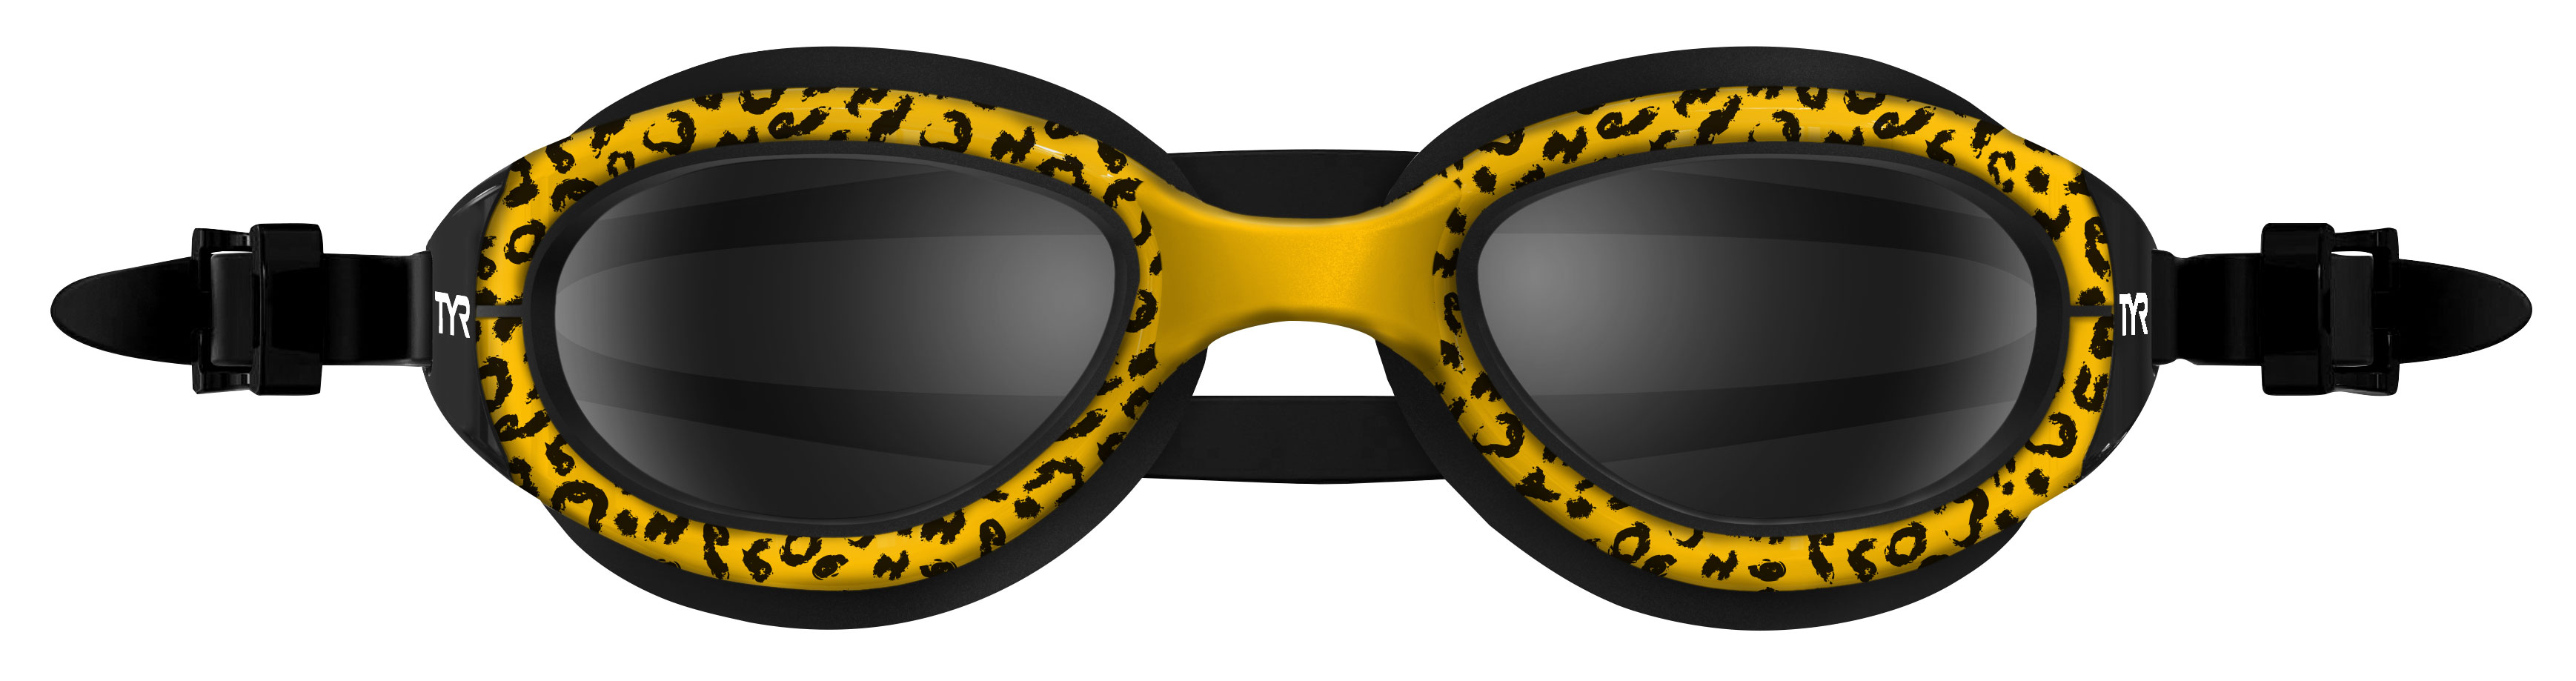 TYR Special Ops 2.0 Smaller Face Polarized Goggle